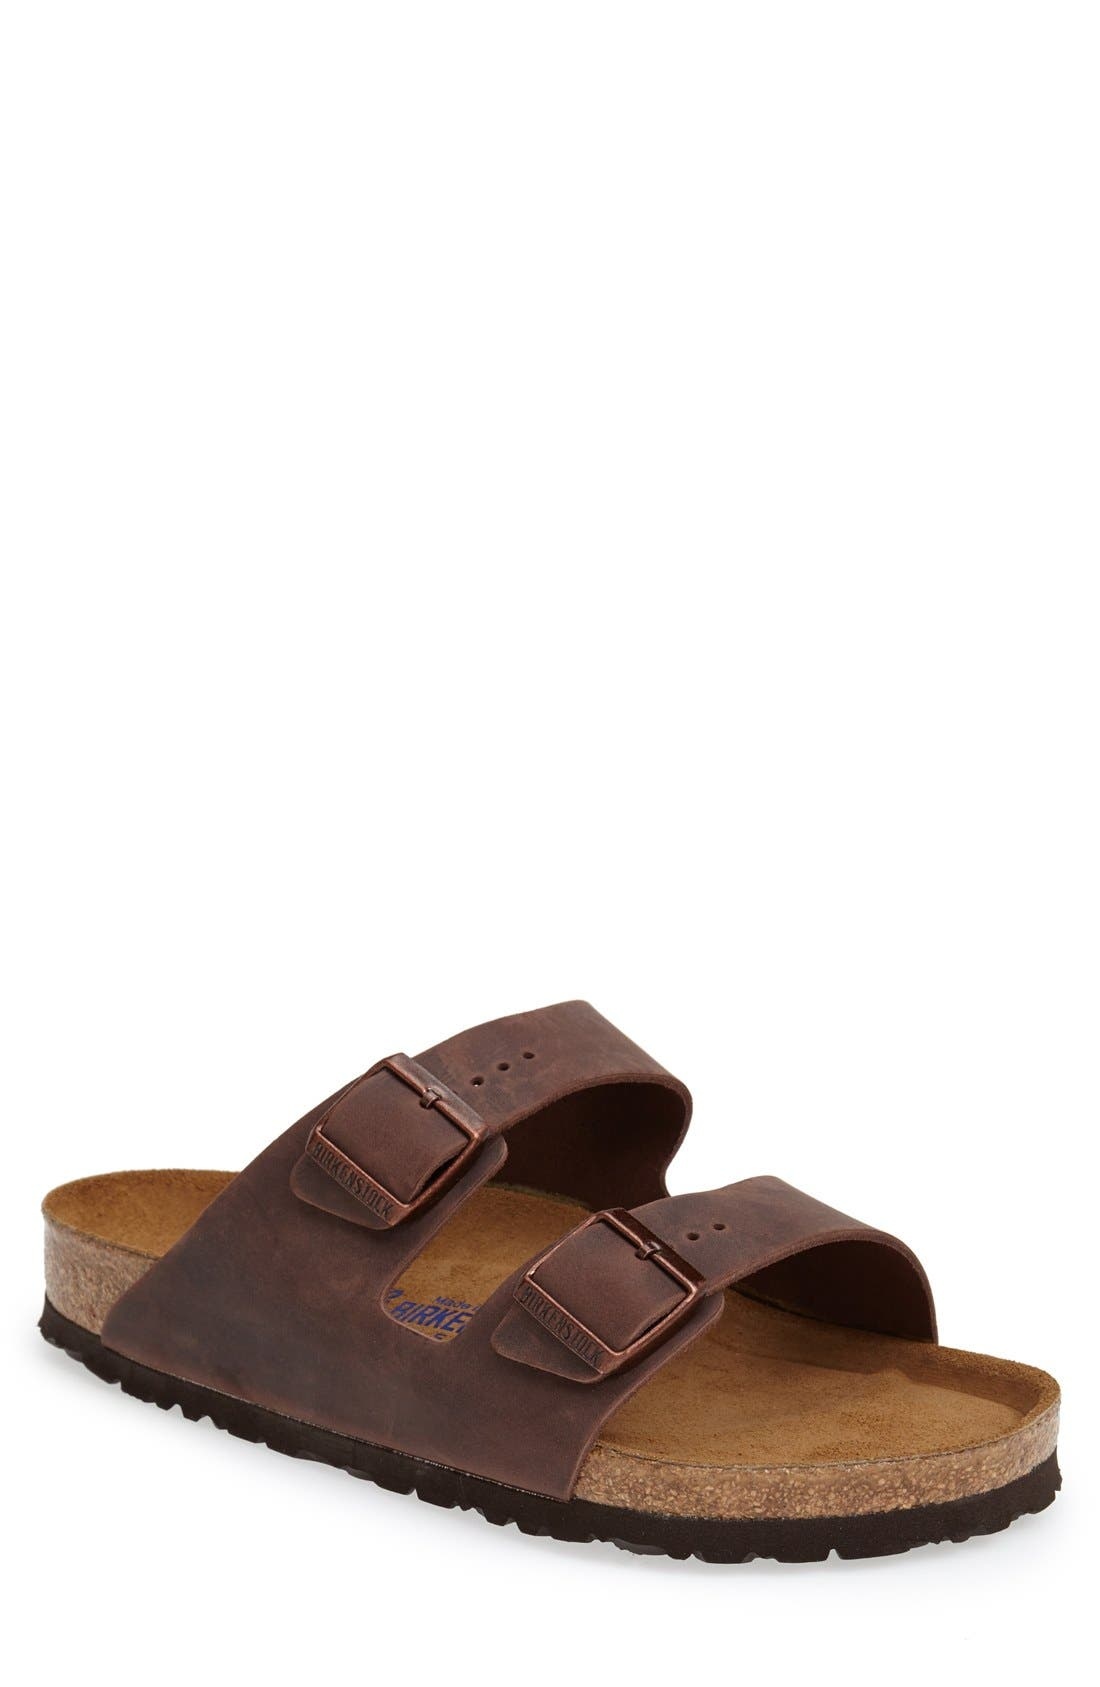 BIRKENSTOCK, Arizona Soft Slide Sandal, Main thumbnail 1, color, HABANA